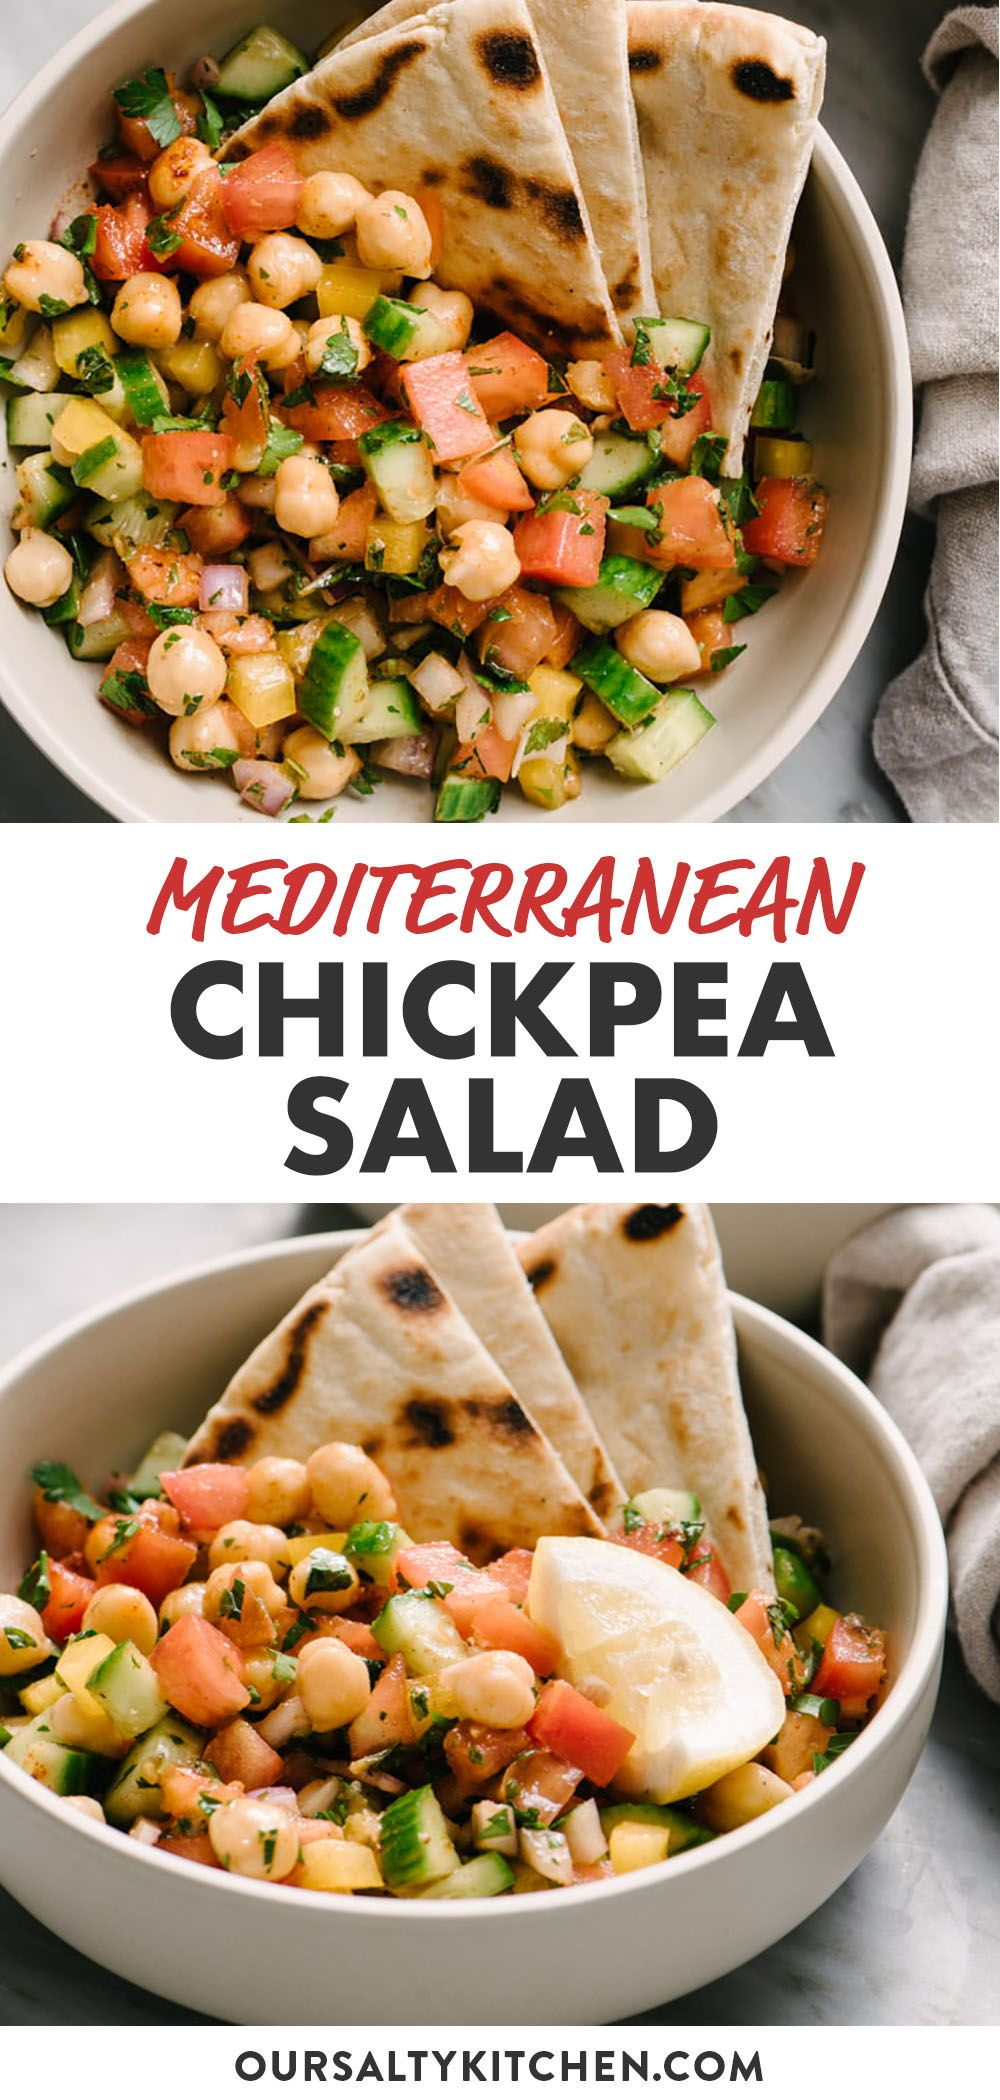 This quick and easy Mediterranean Chickpea Salad has it all - punchy flavor, bright colors, loads of healthy nutrients, and enough fiber and protein to keep you full and fueled for hours. It's an incredibly flexible recipe that's perfect for meal prep, a fast weeknight dinner, or an impressive potluck or picnic offering. Naturally vegan and gluten free, this simple salad will become a summer must-make! #vegan #sidedish #salads #chickpeas #glutenfree